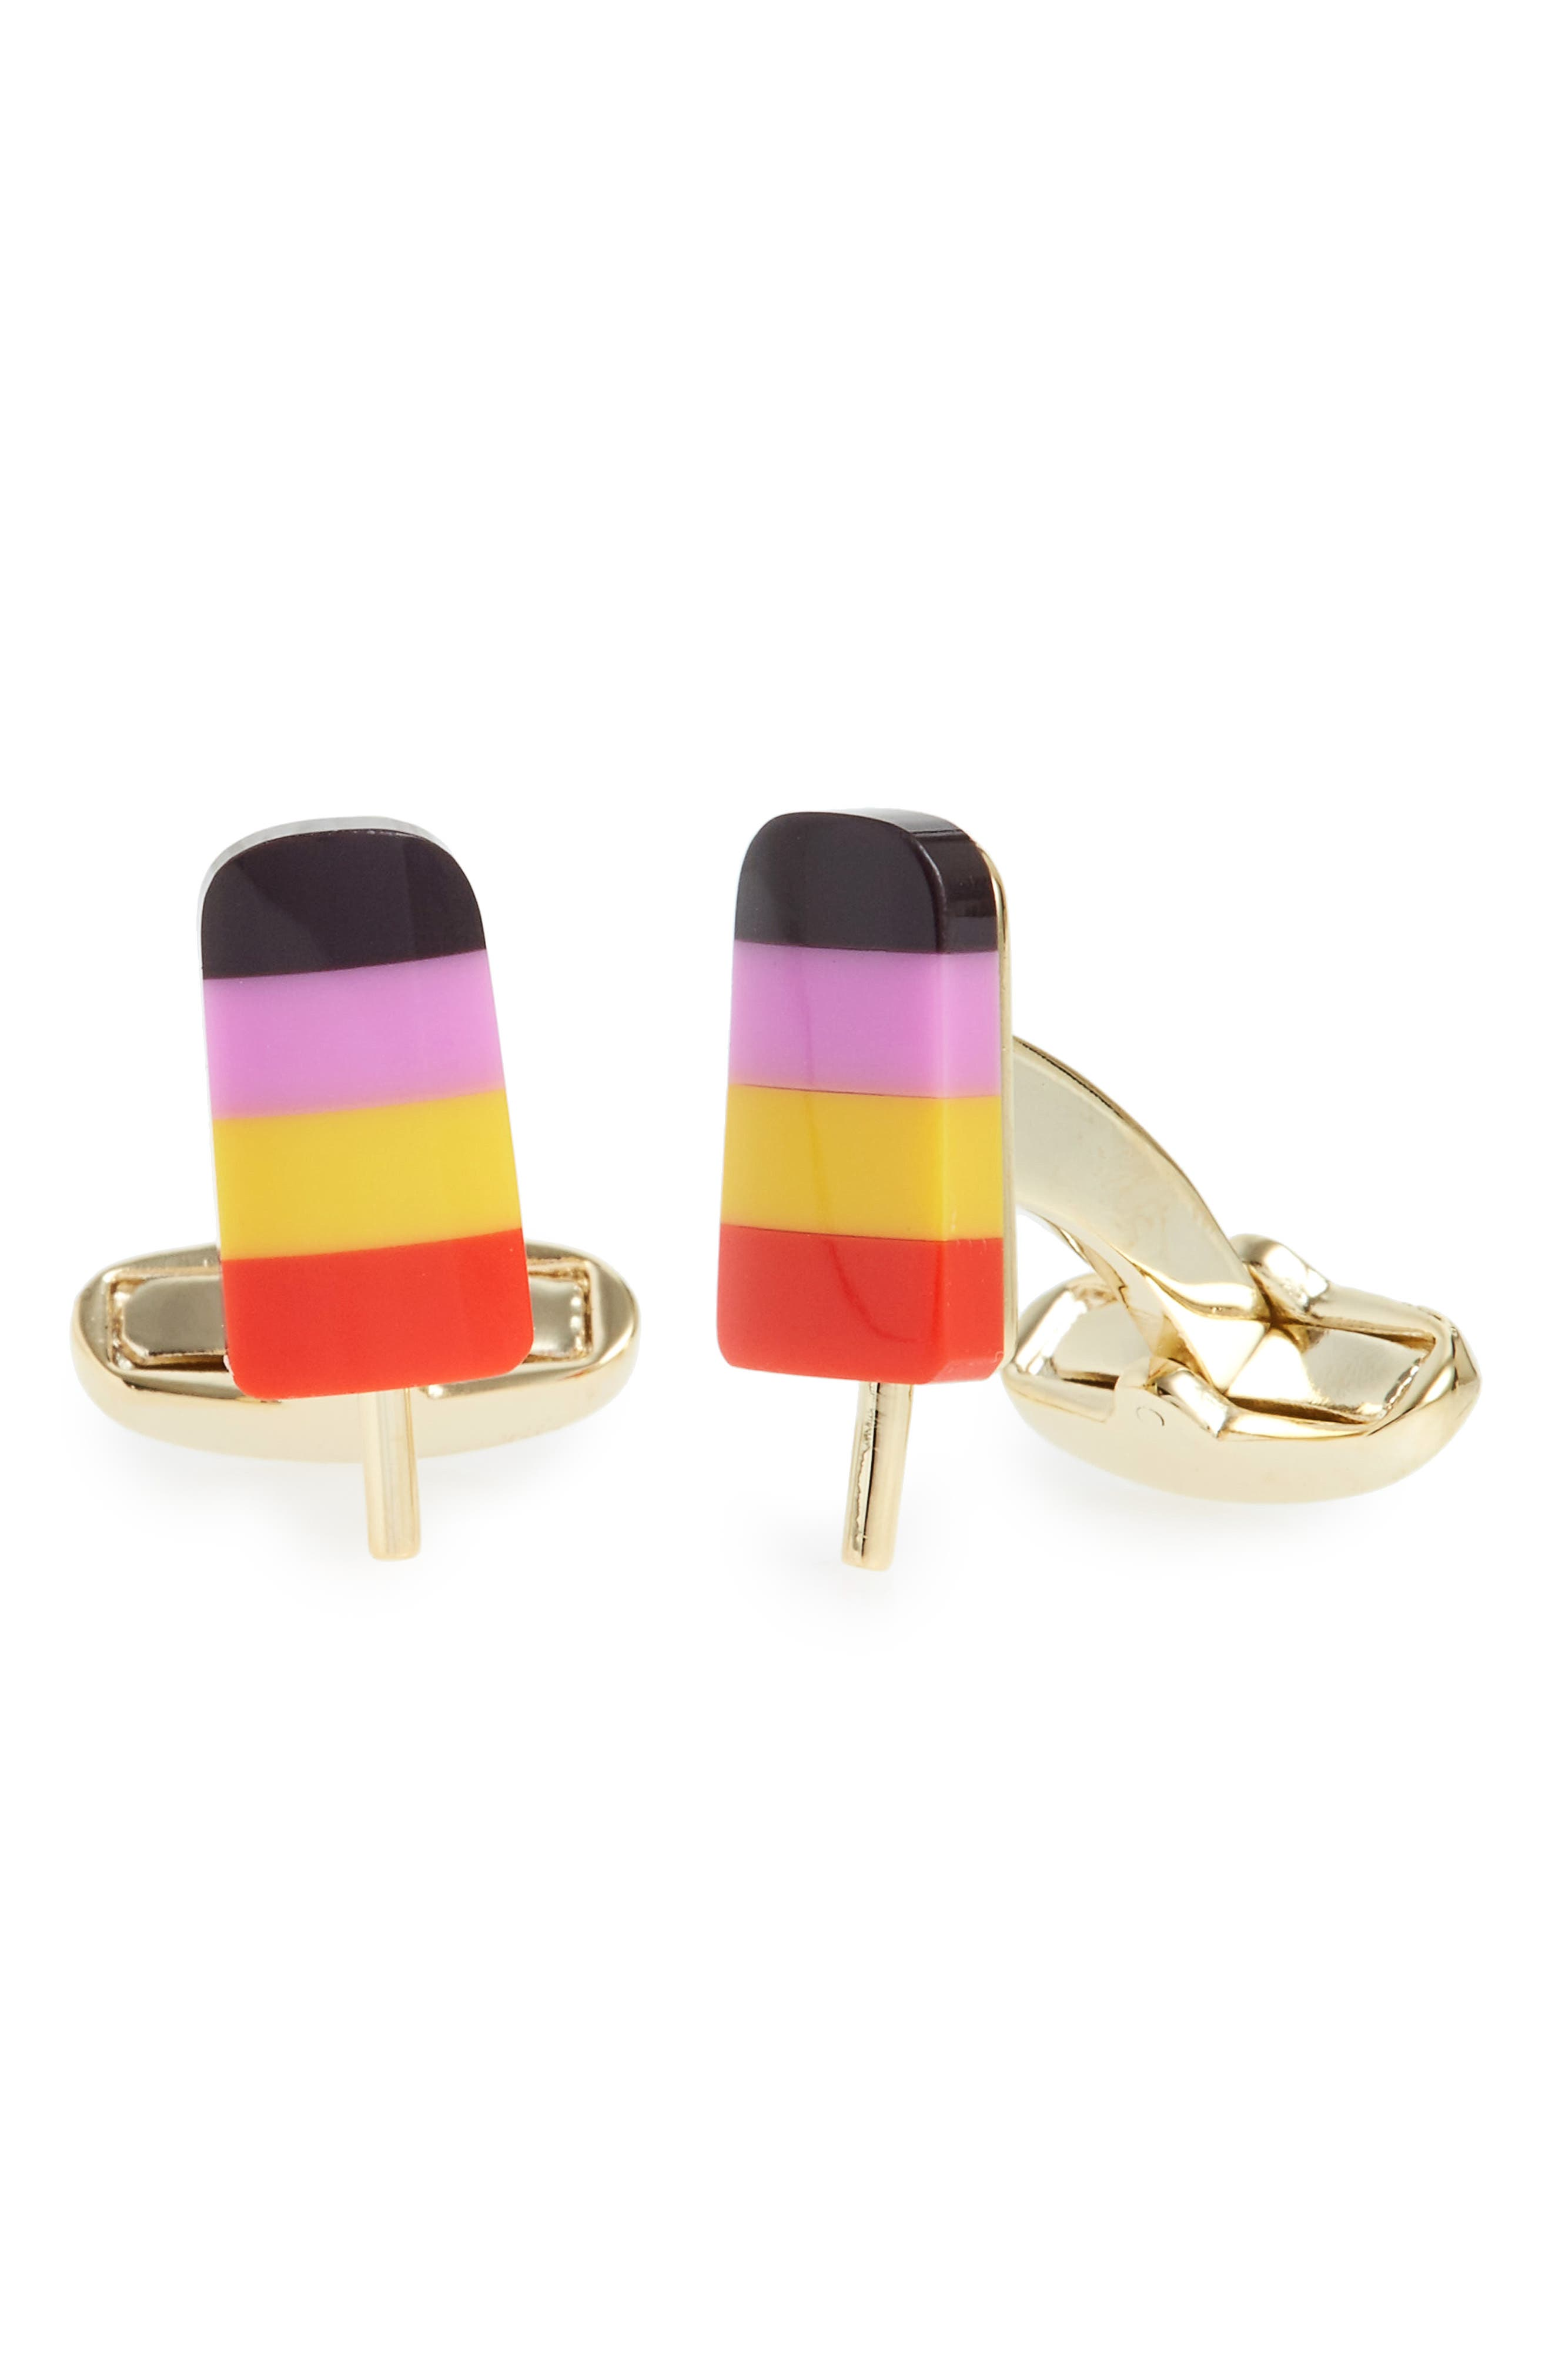 Main Image - Paul Smith Popsicle Cuff Links